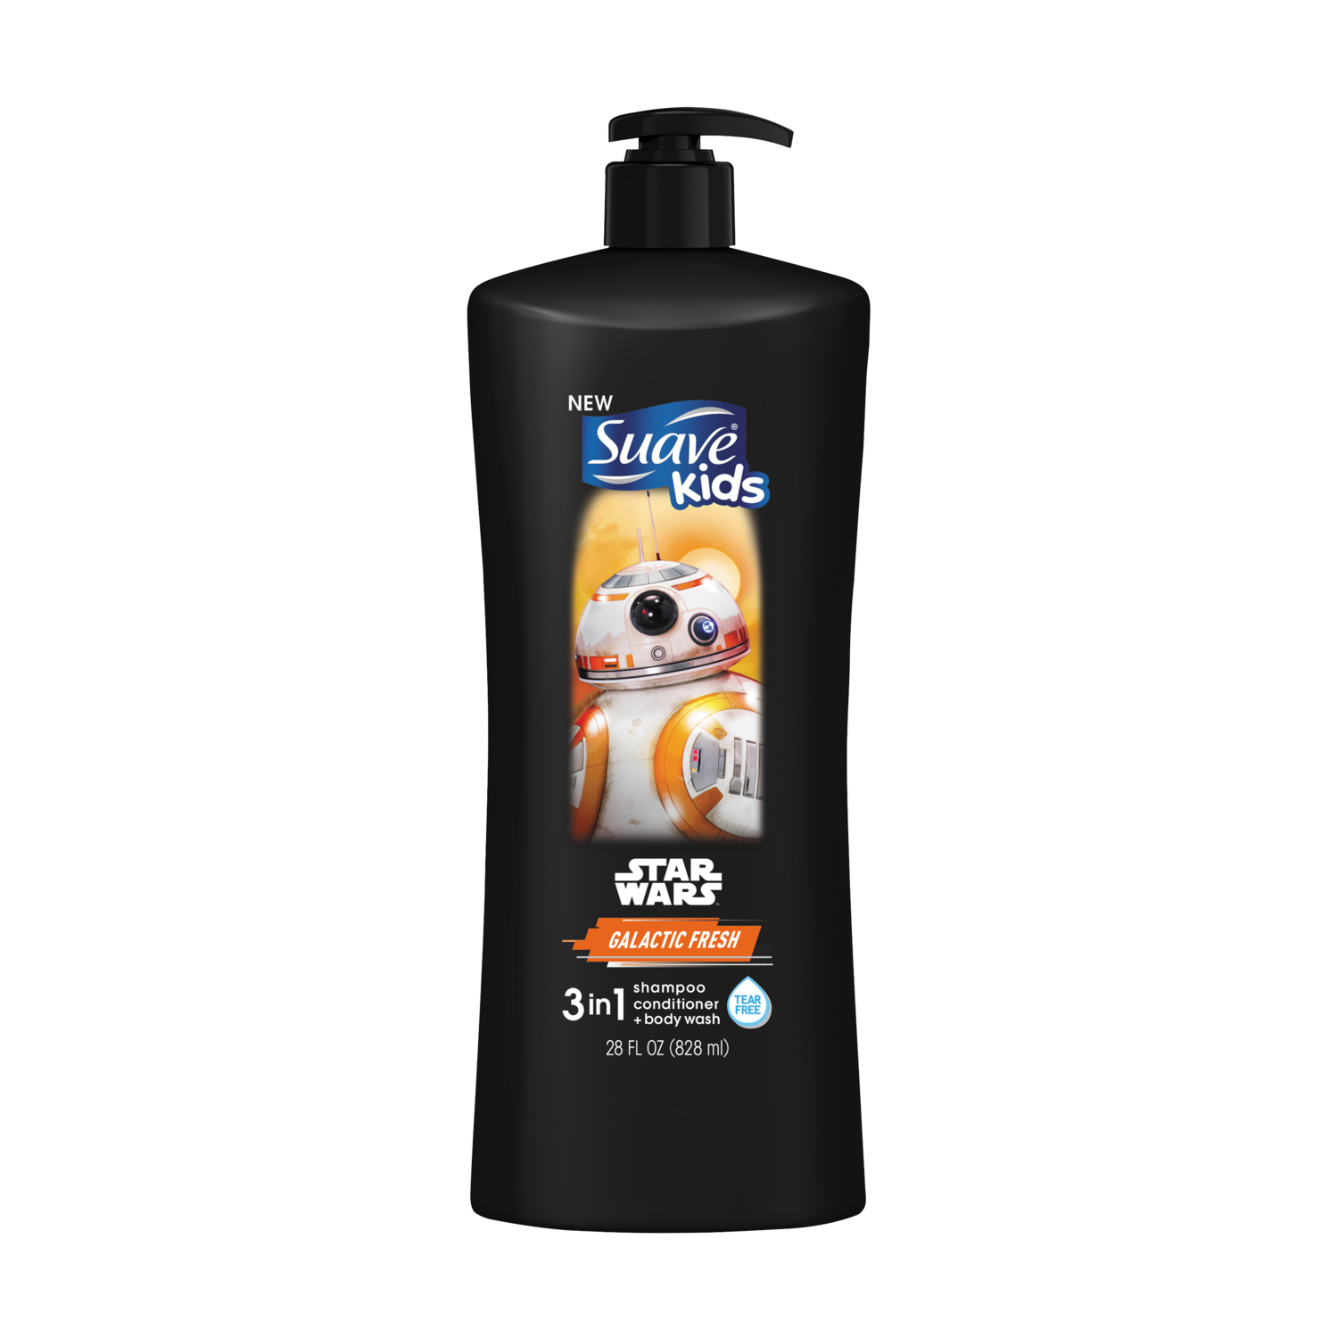 Disney Star Wars BB-8 Galactic Fresh 3-in-1 Shampoo